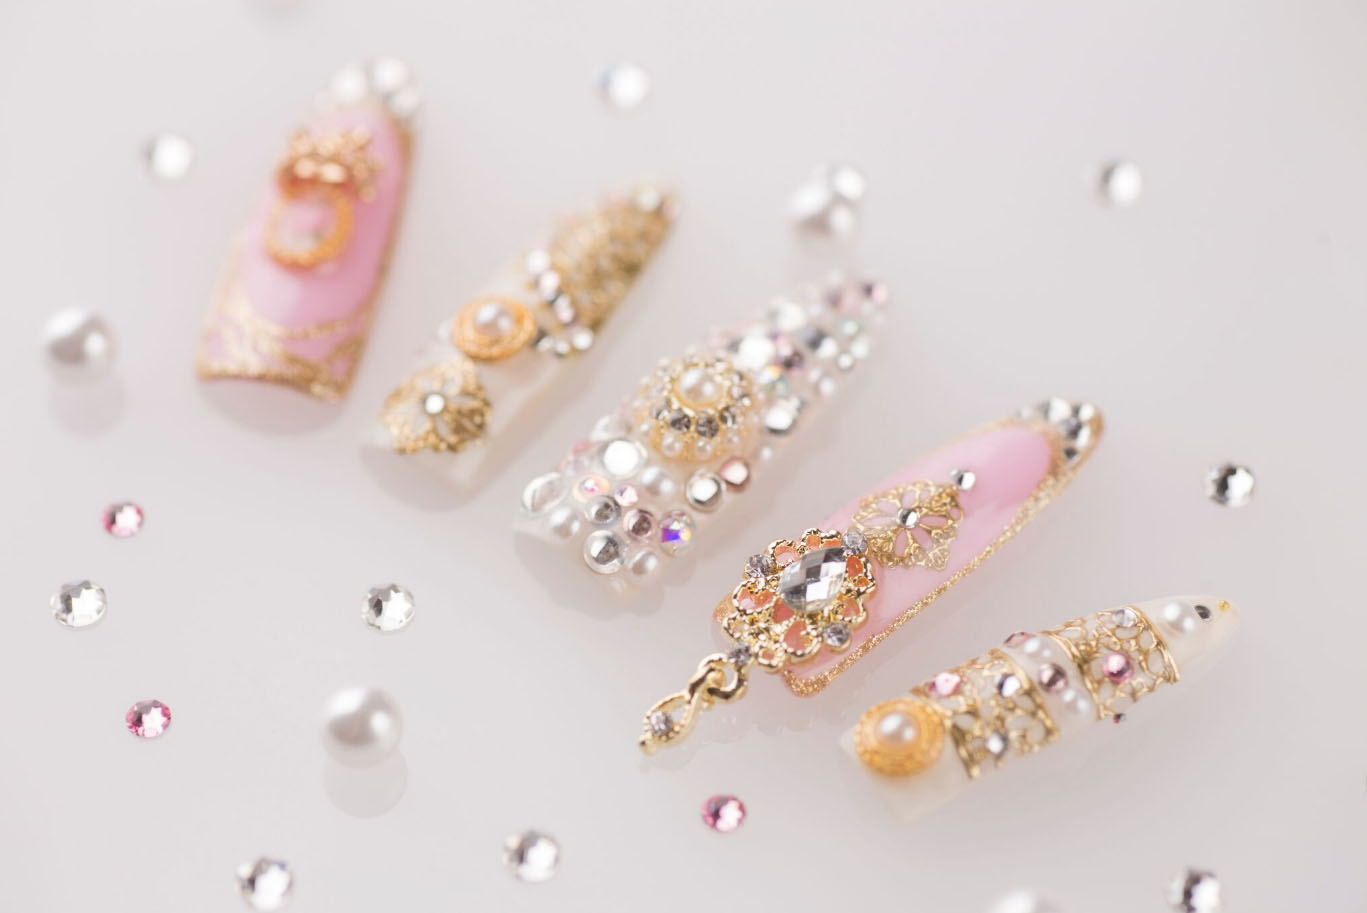 Inspired Fashion From Marie Antoinette Nail Art To 60s Textiles To